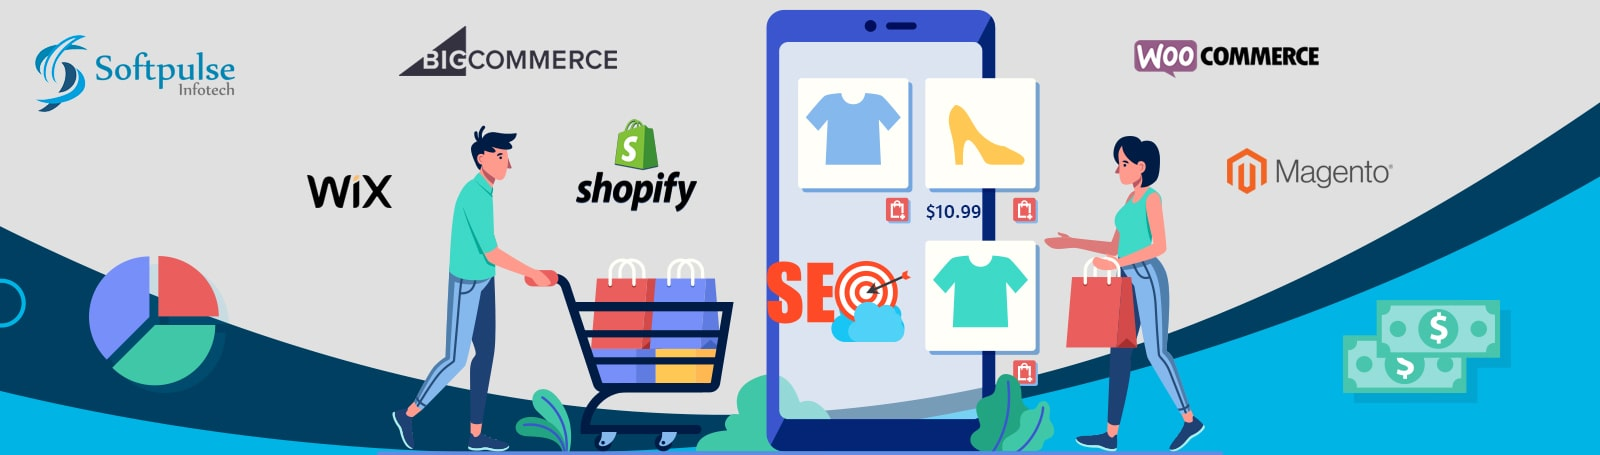 Compare Ecommerce Platforms 2021: Who Is The Best For SEO